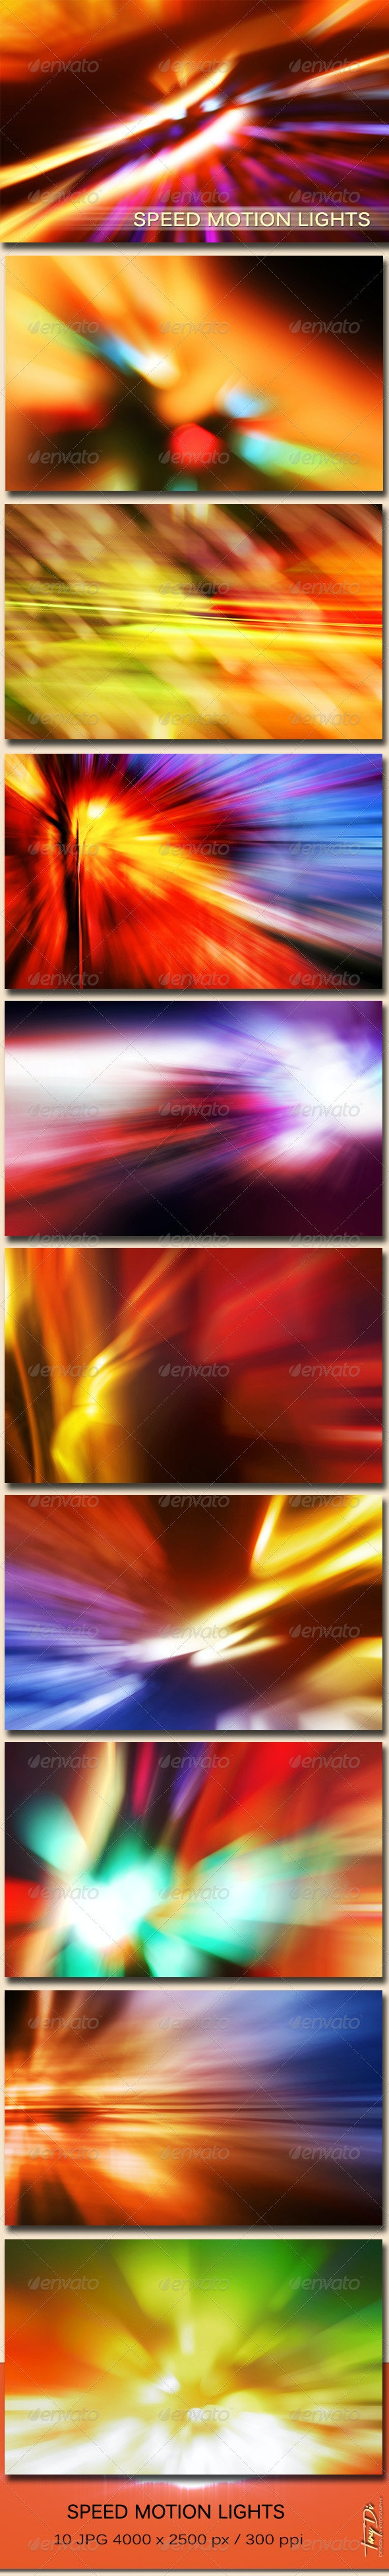 Speed Motion Lights - Miscellaneous Backgrounds